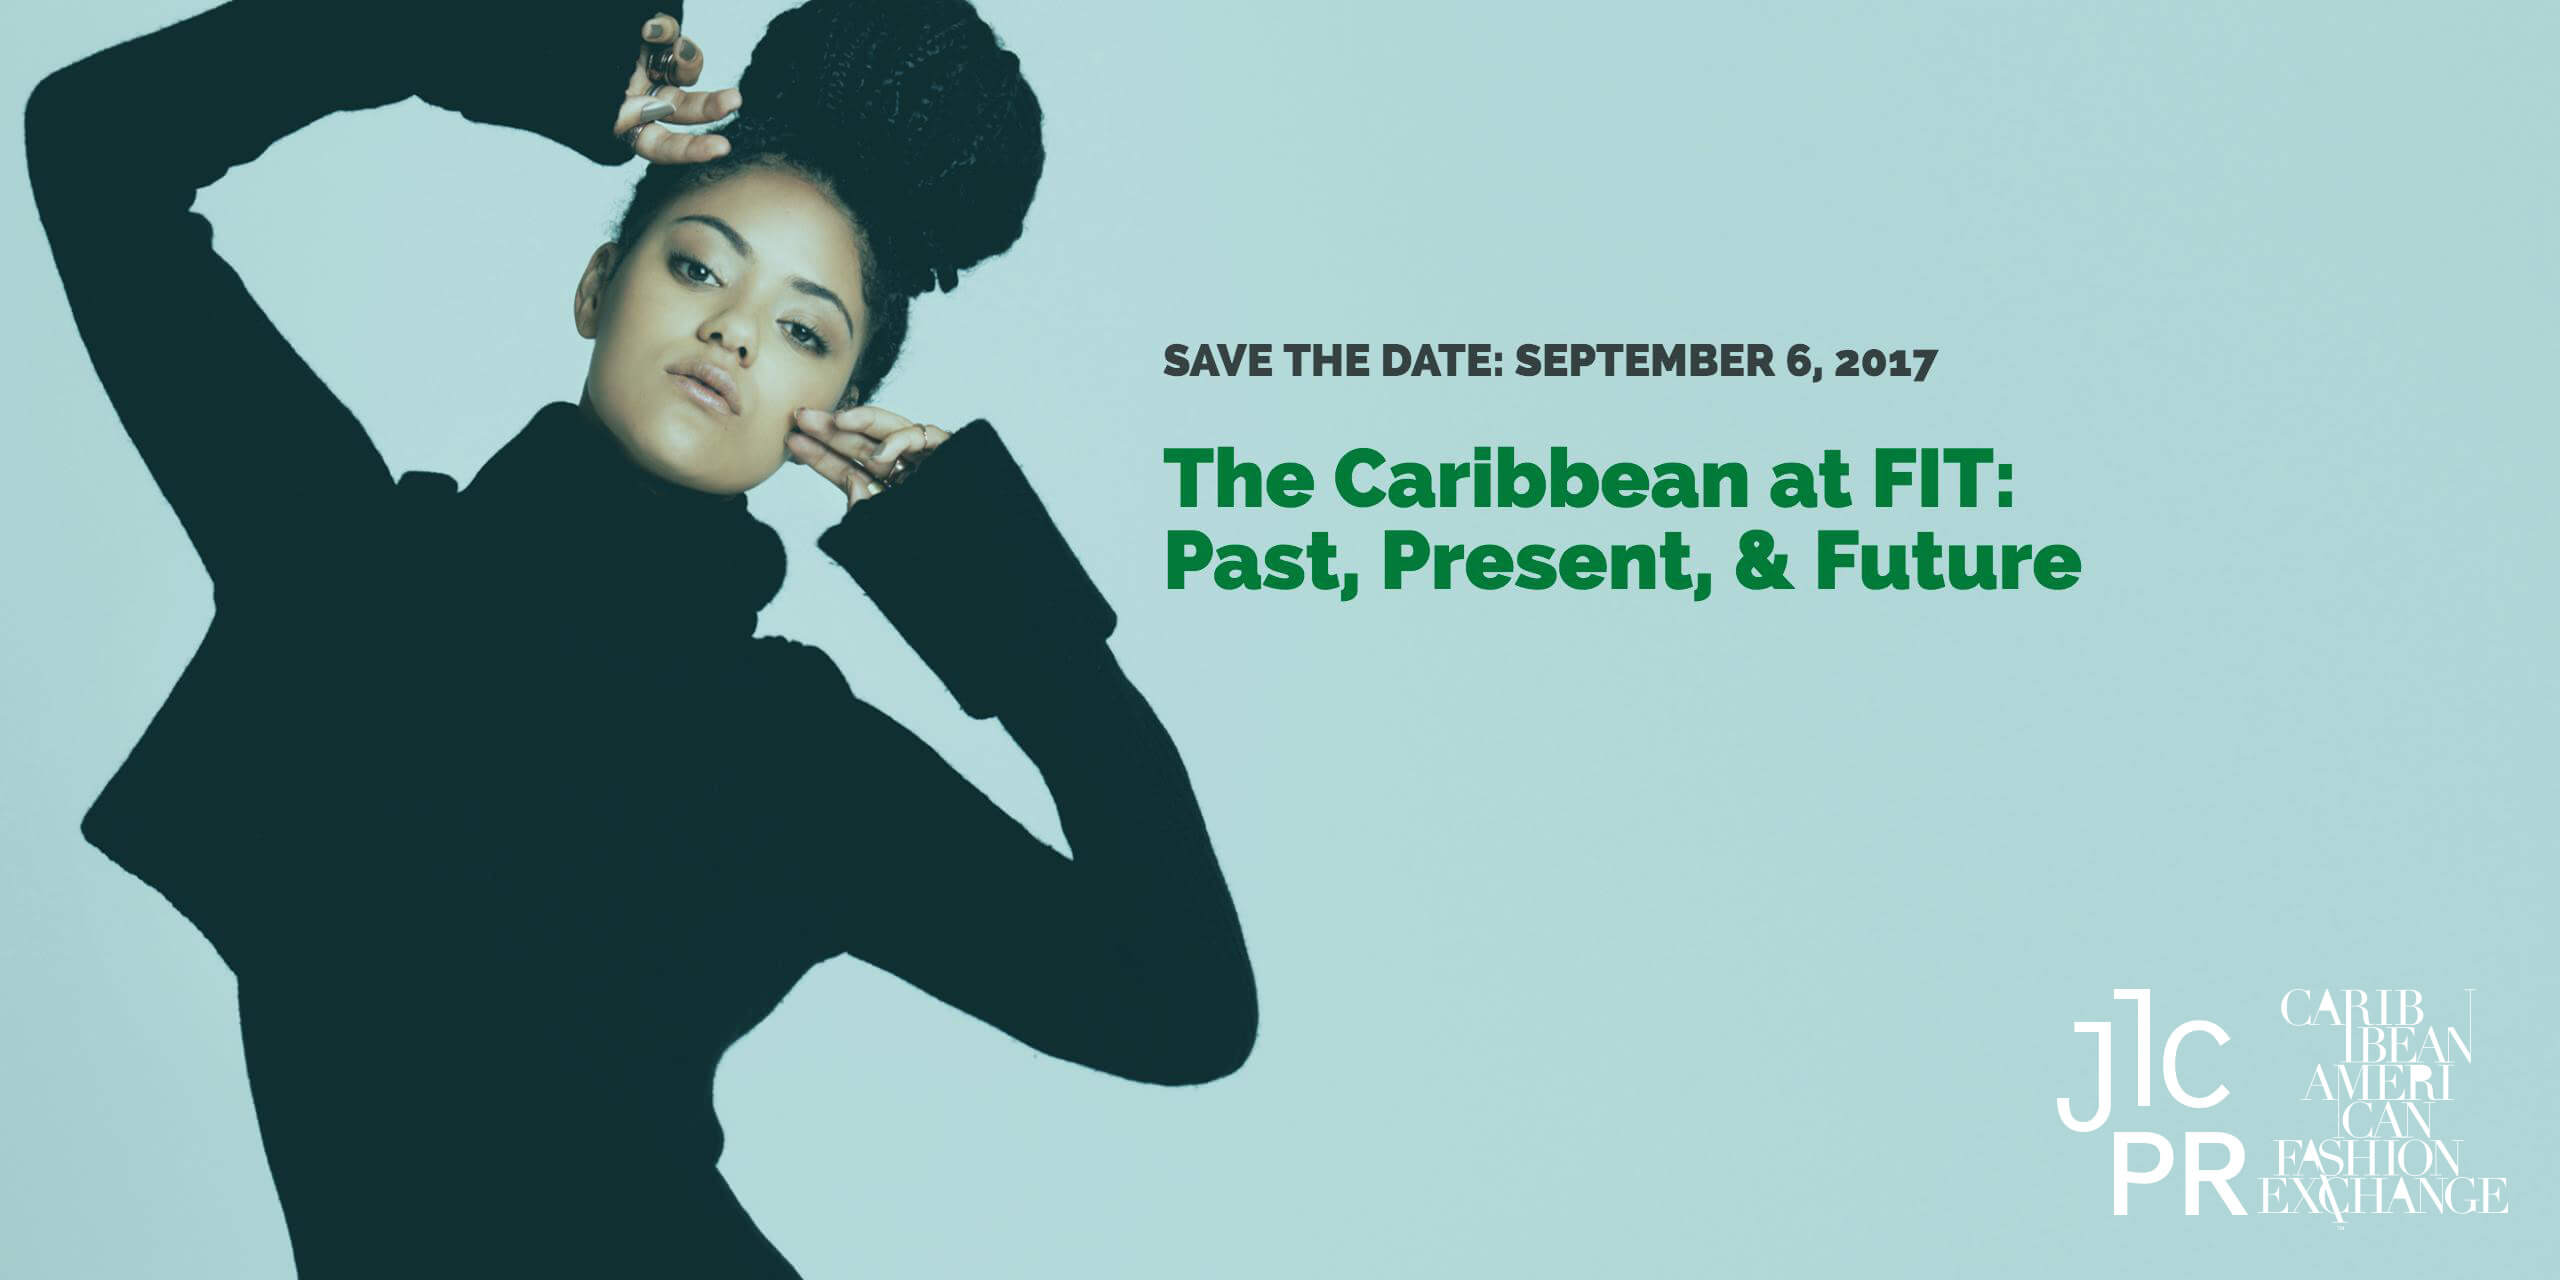 The Caribbean at FIT: Past, Present & Future